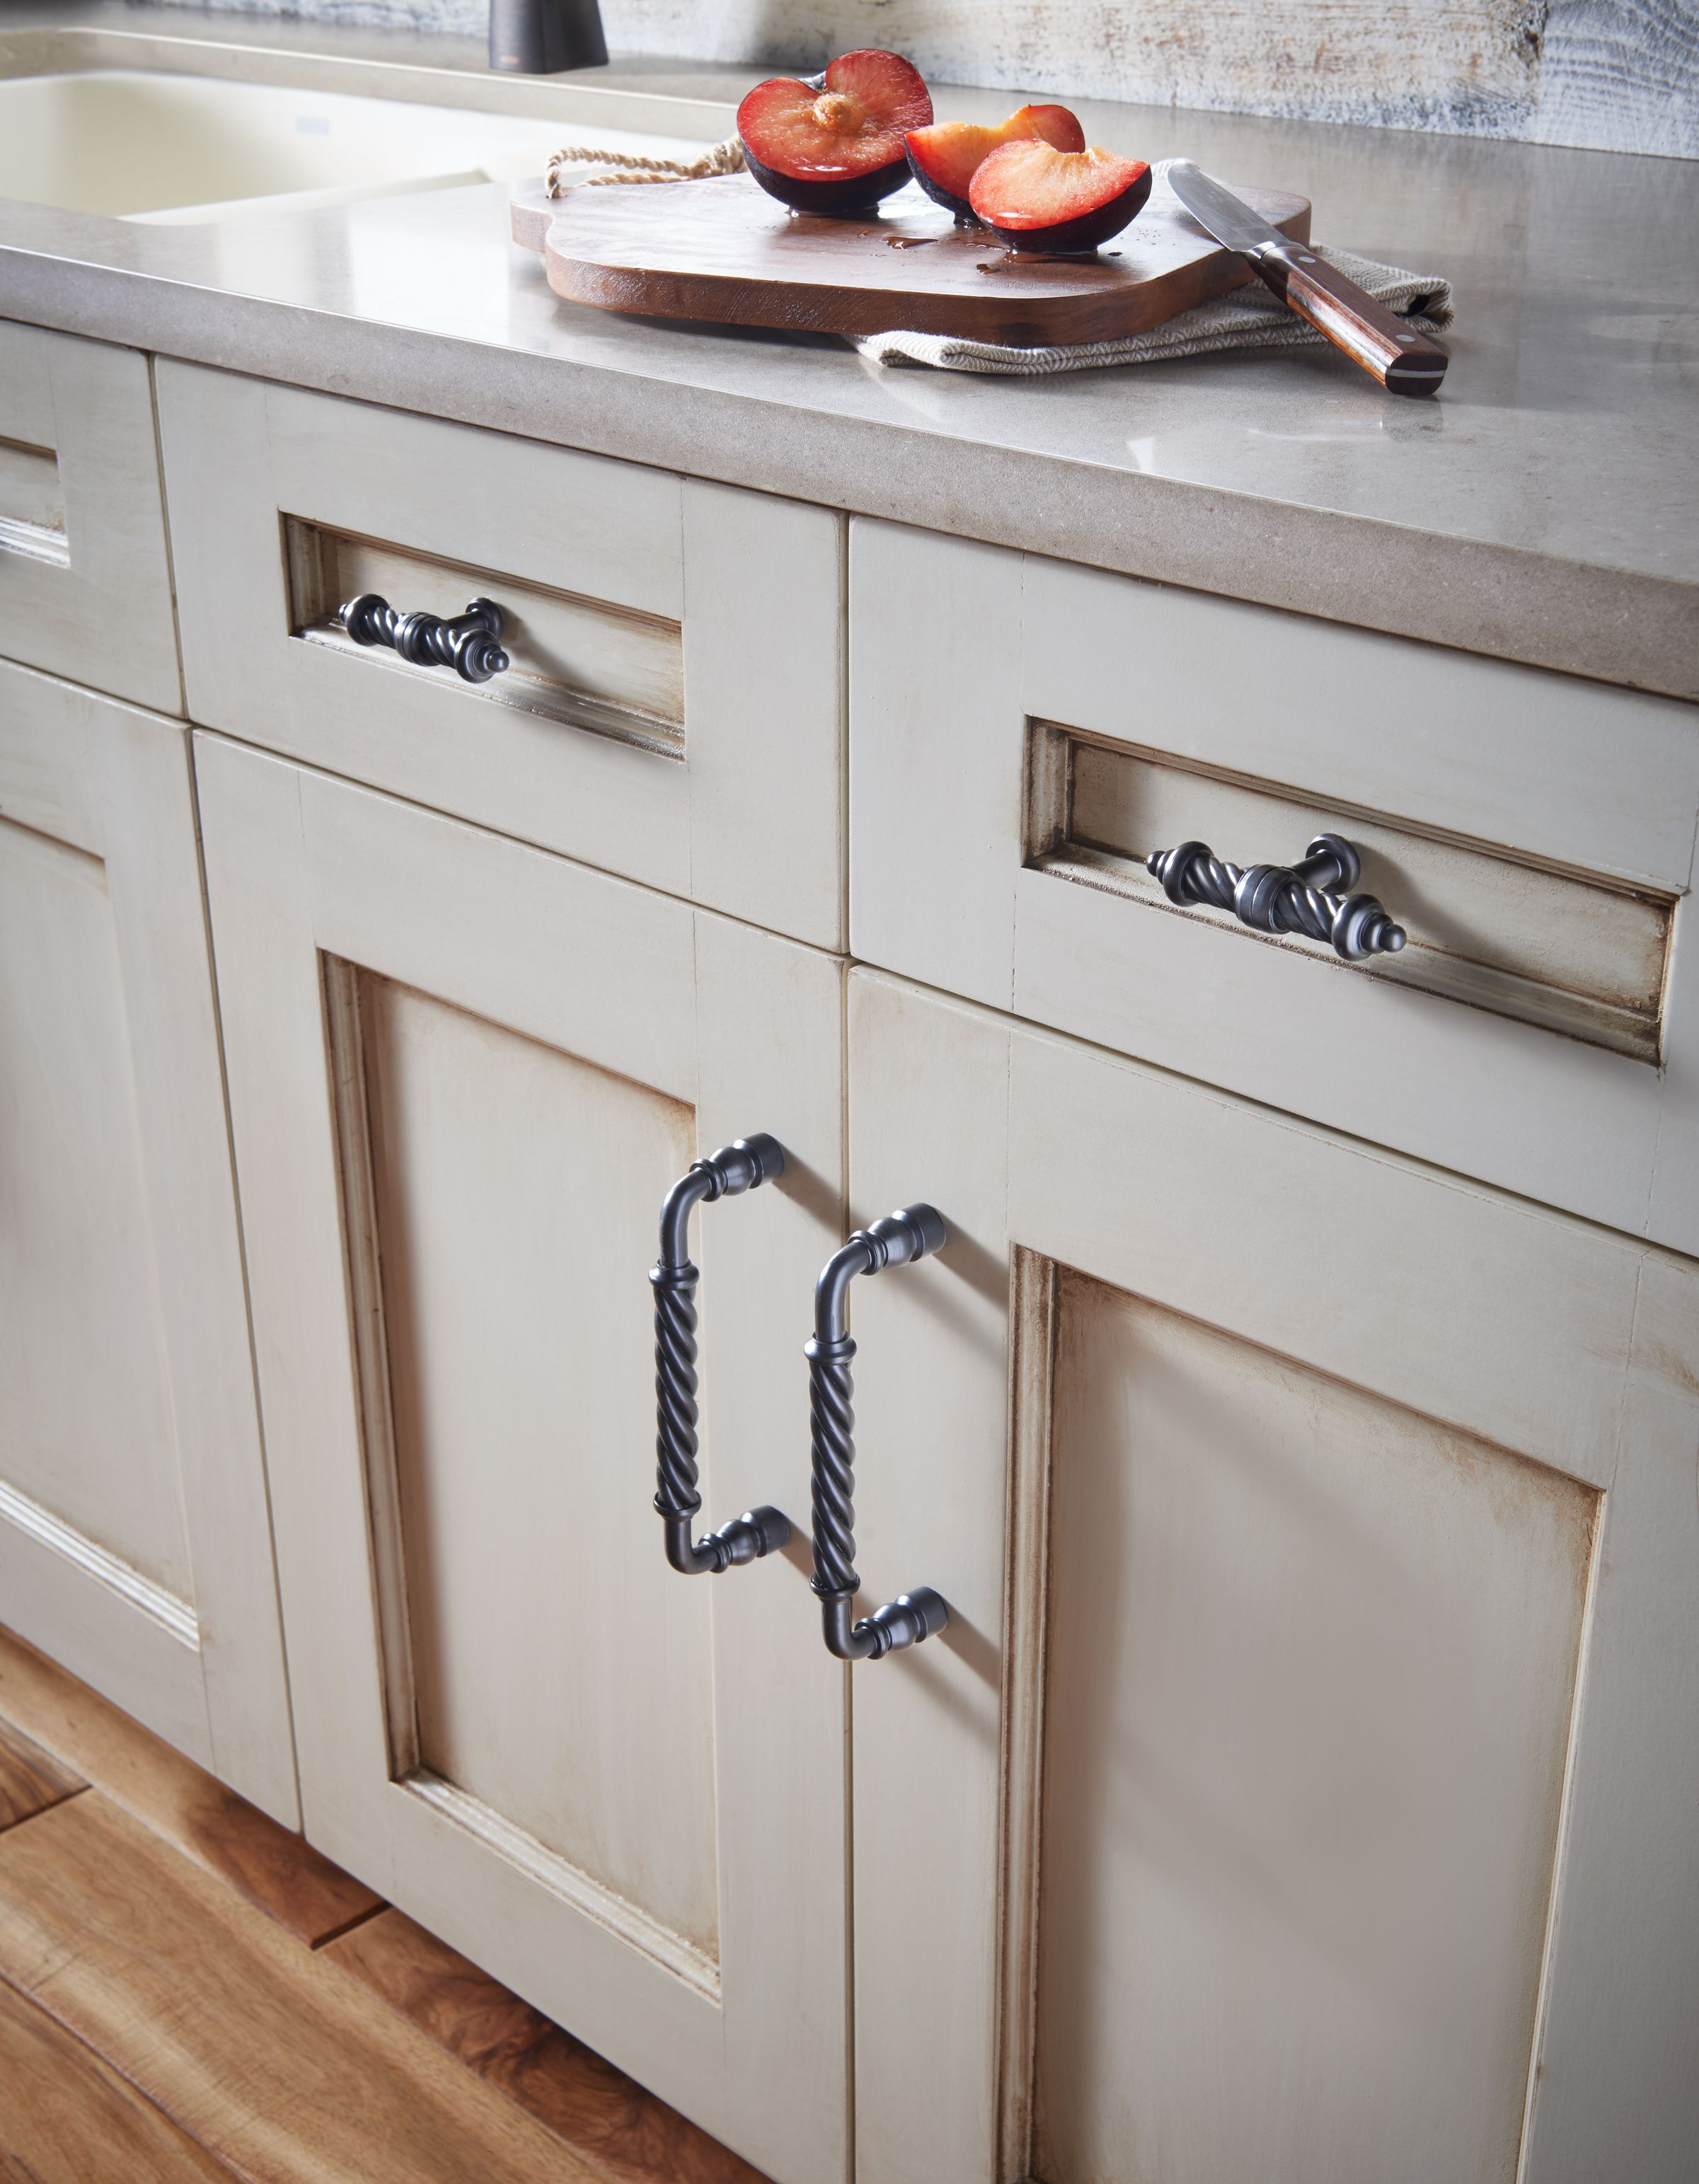 Pin on kitchen knobs and pulls